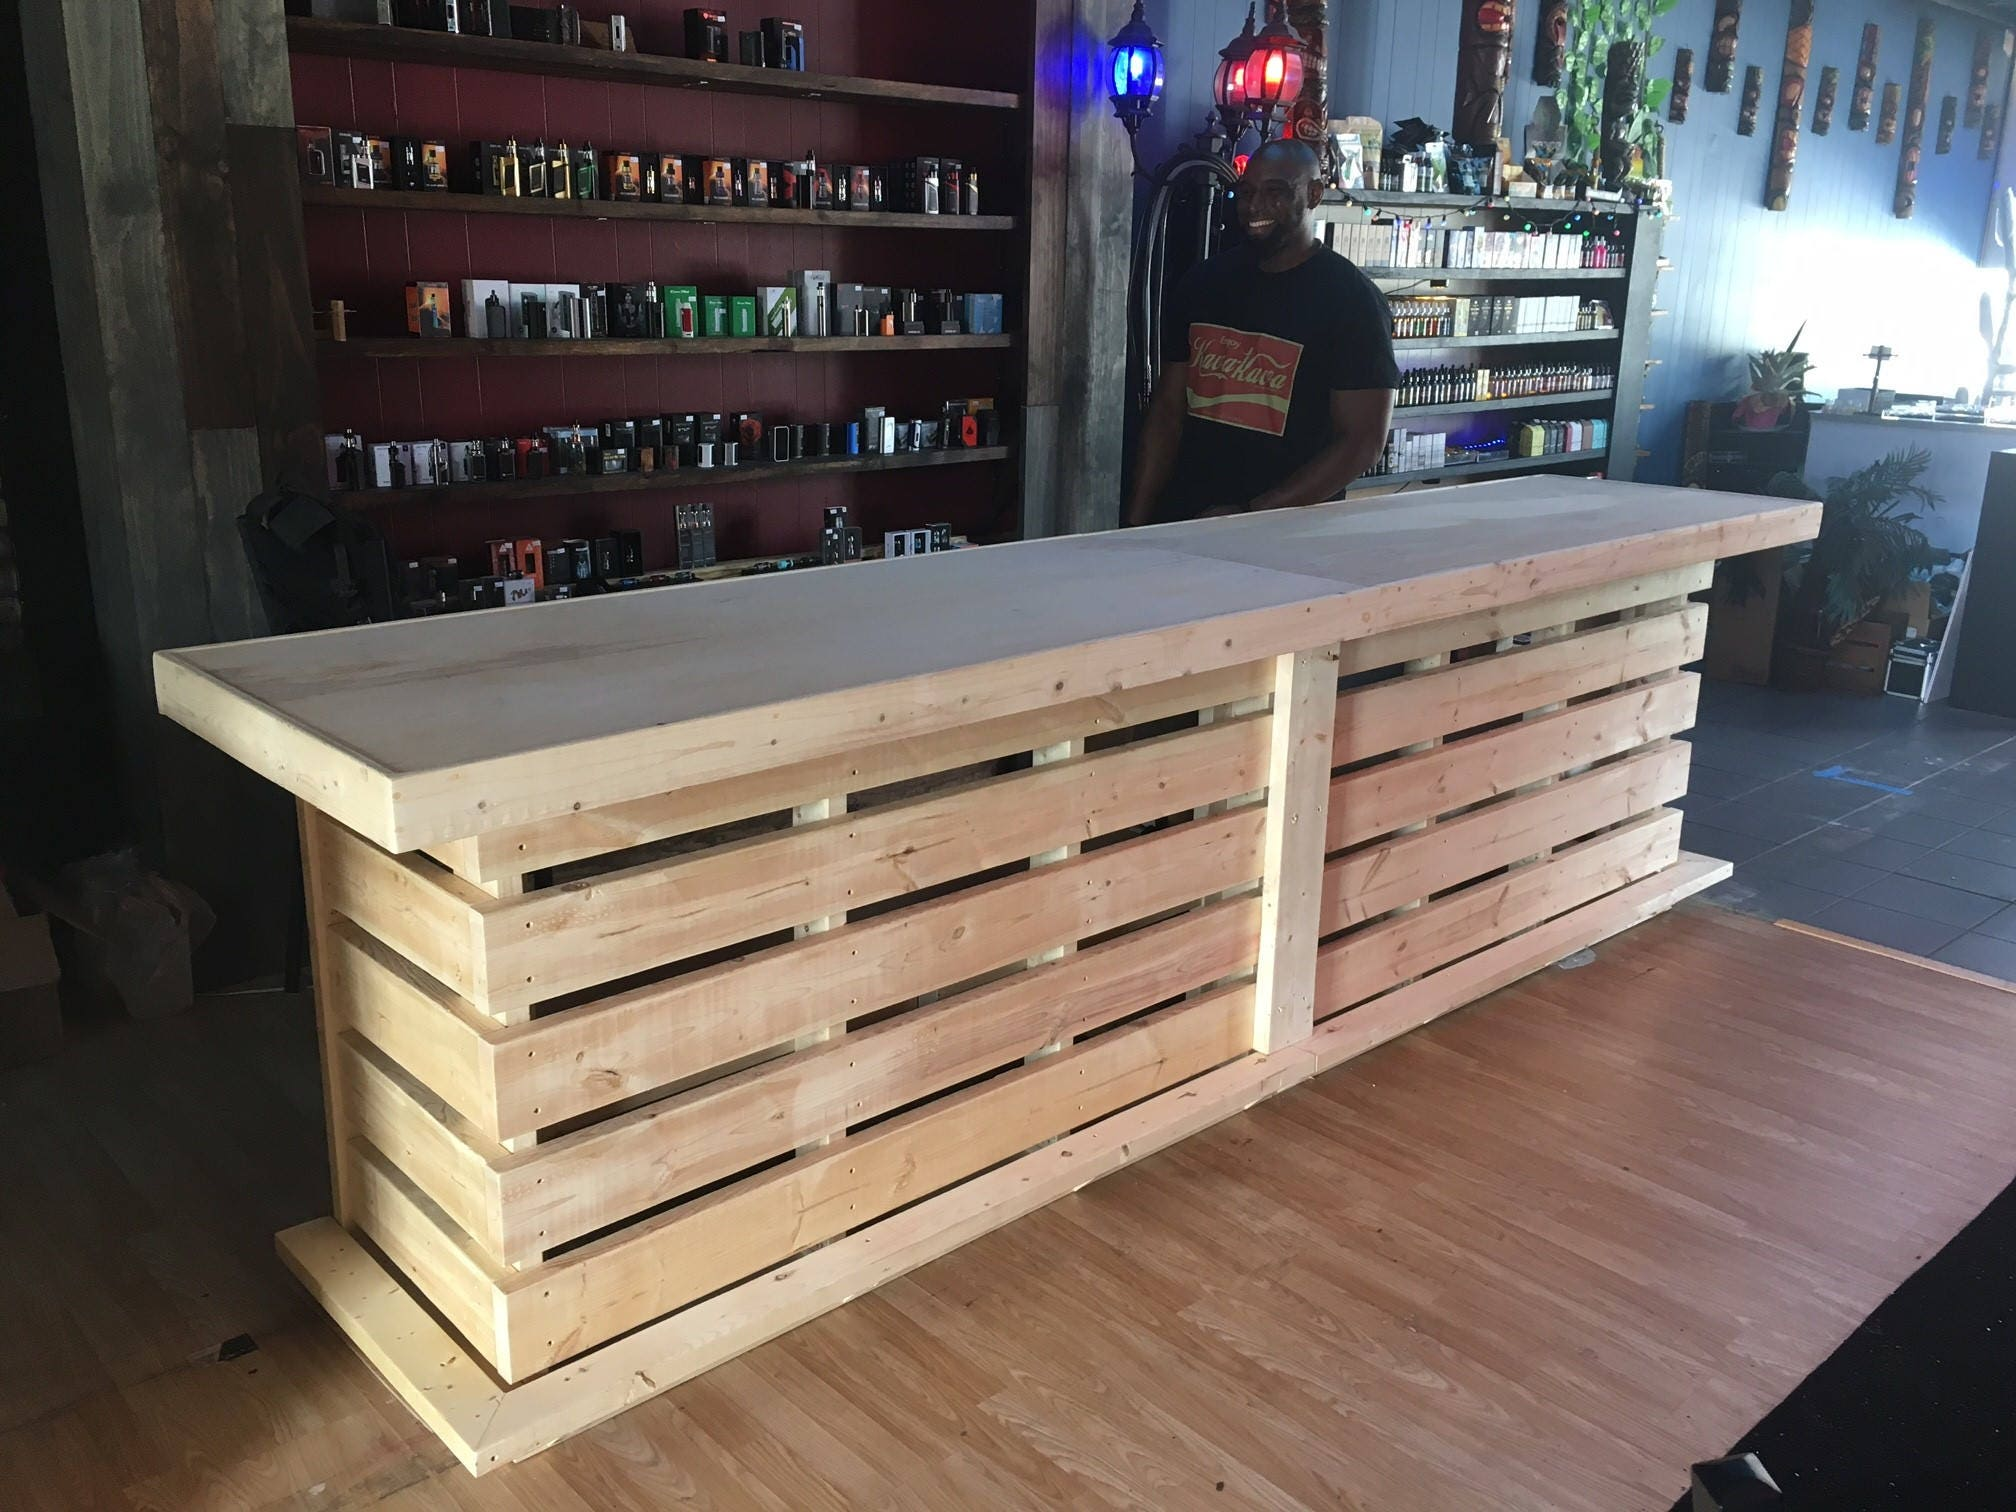 Wondrous The Whoadie Pallet Style Rustic Dry Bar Reception Desk Or Download Free Architecture Designs Embacsunscenecom